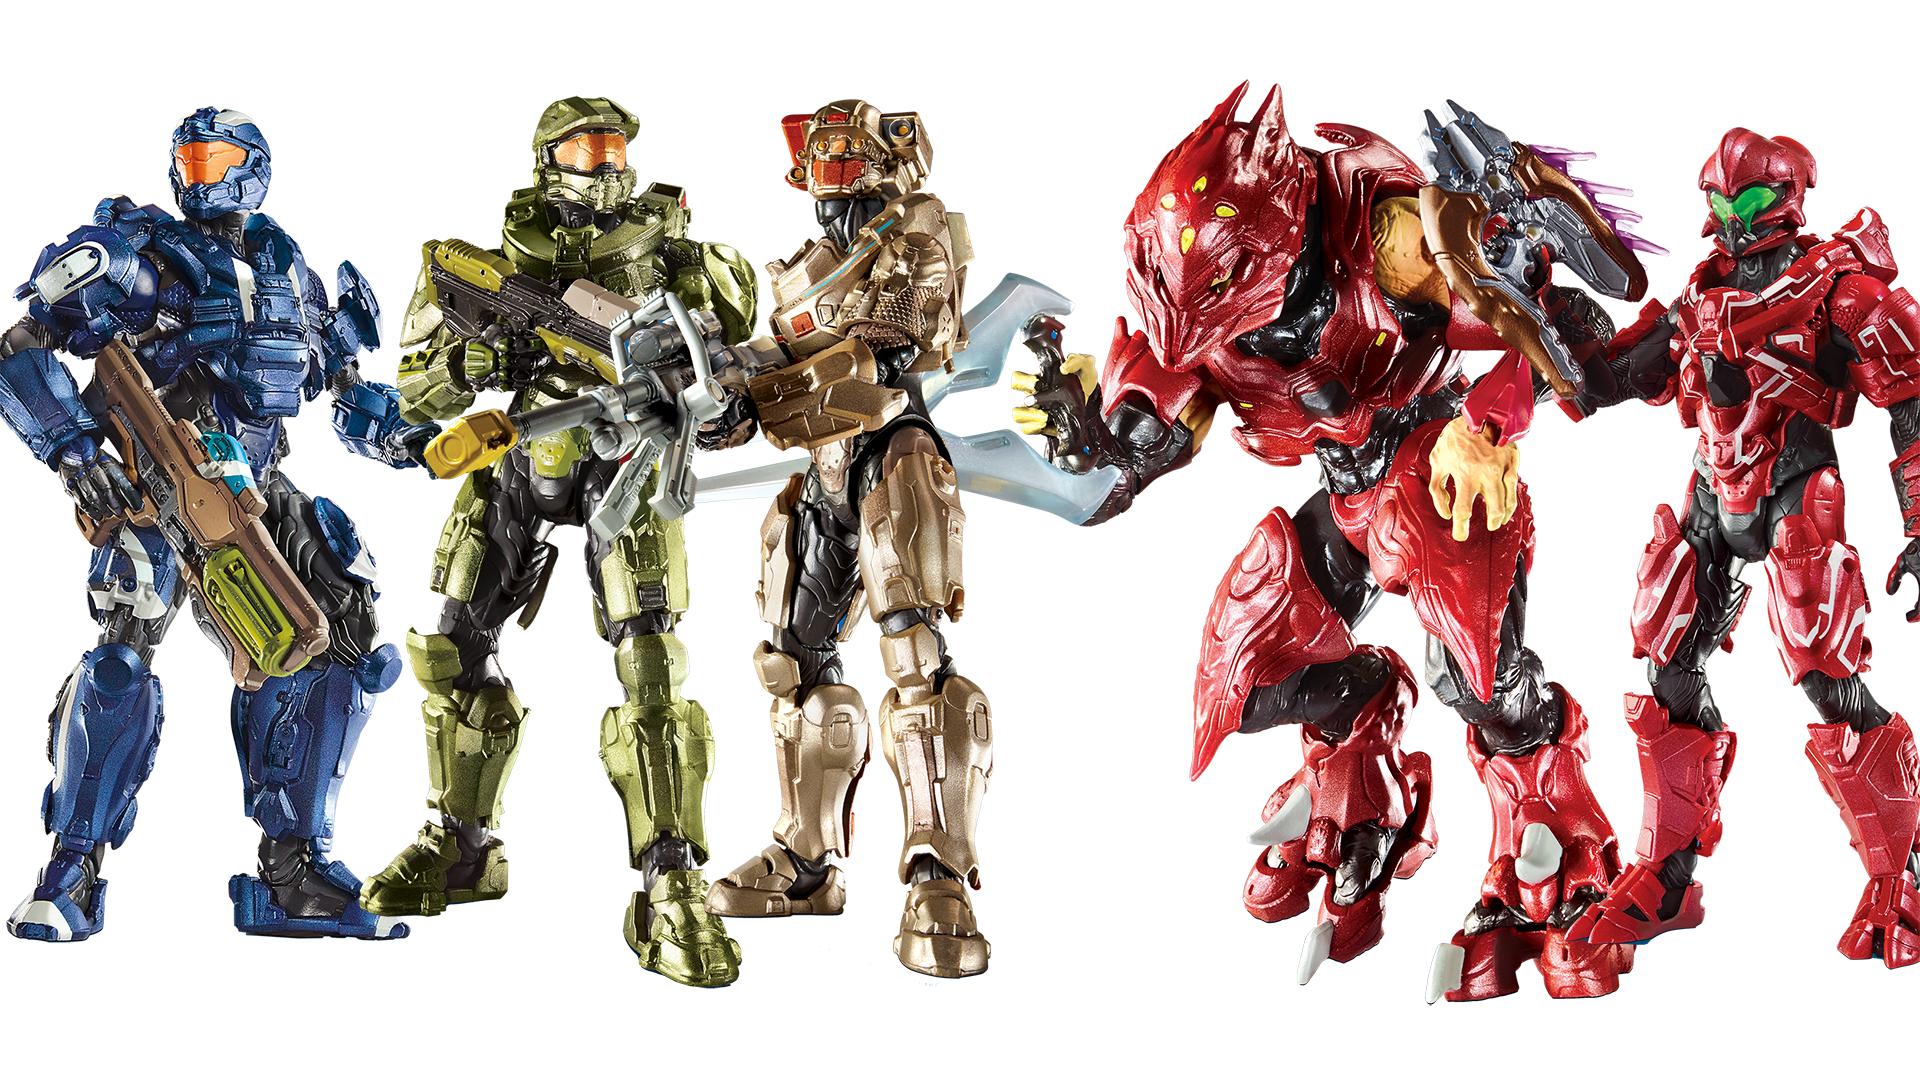 Mattel's Doing All The Halo Toys Now, And They Look Killer